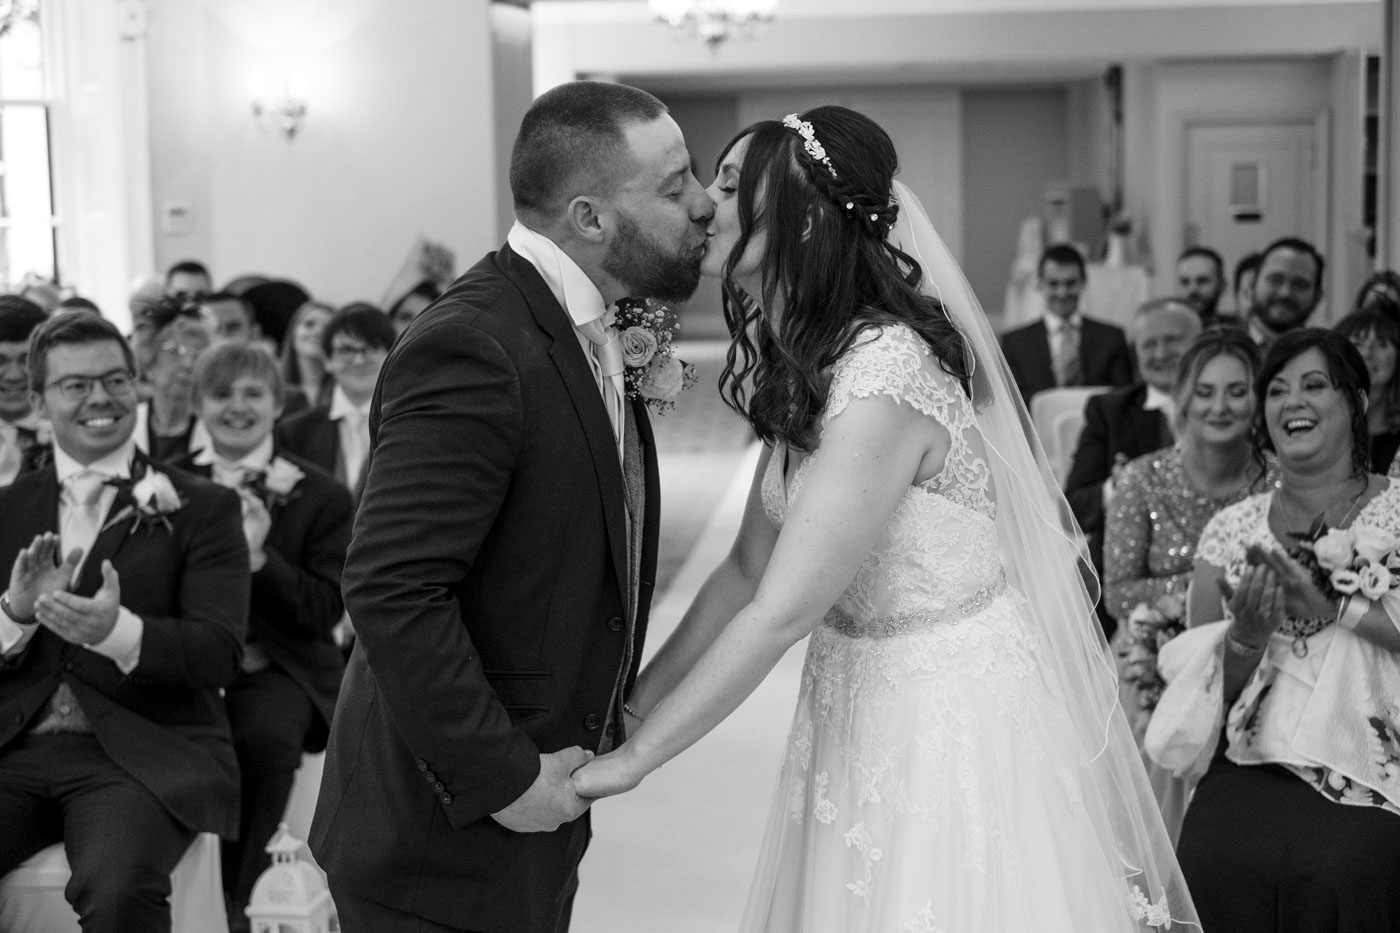 first kiss as a married couple in the ceremony